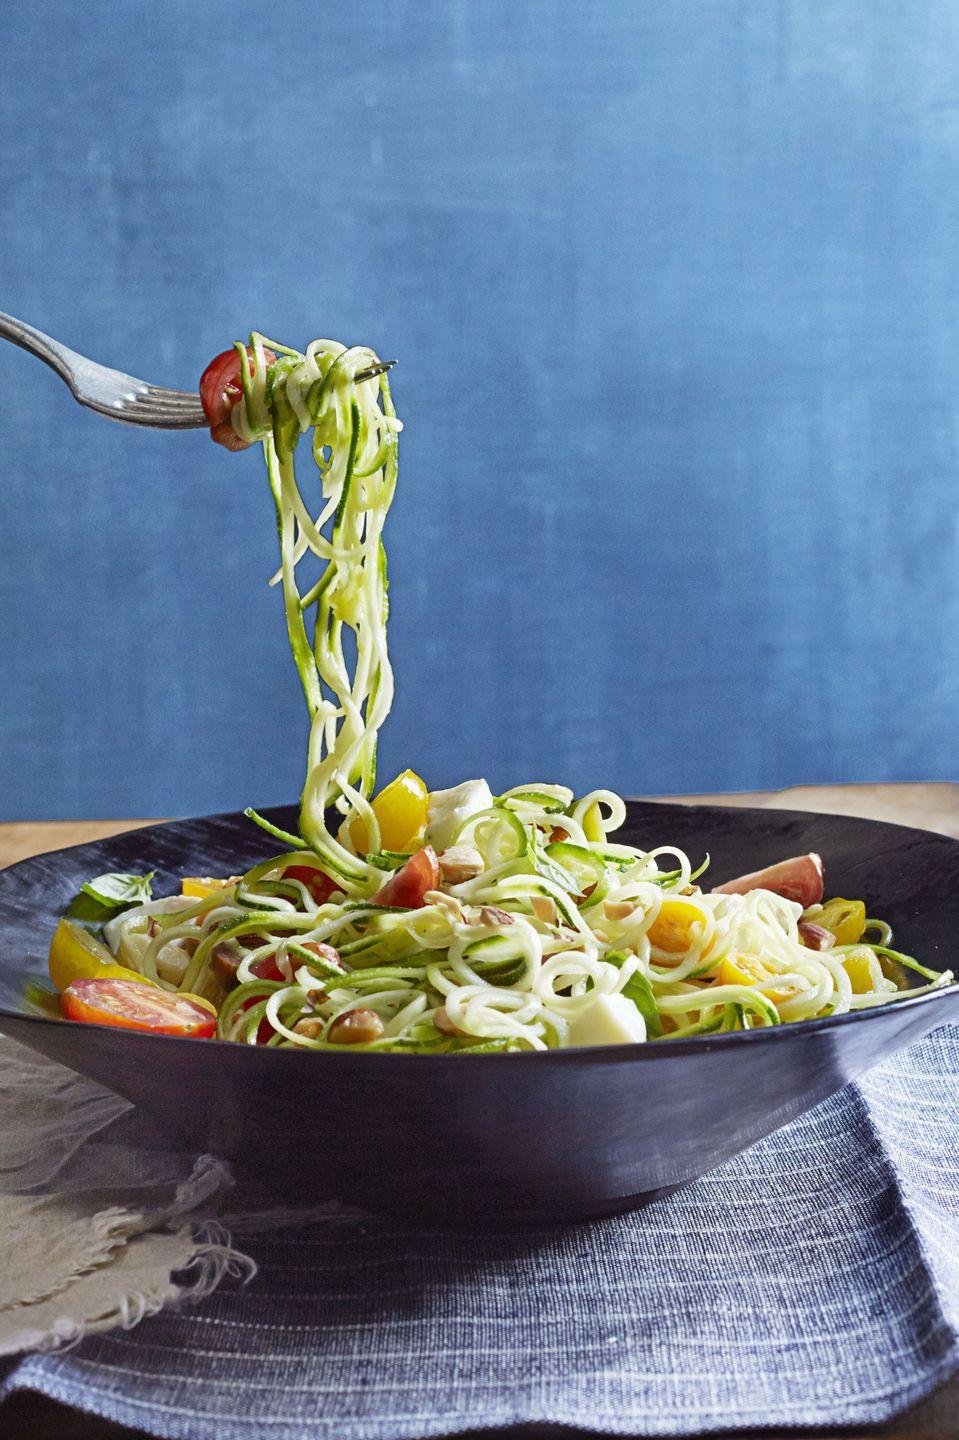 """<p>Reason #857,396 you should invest in a <a href=""""https://www.goodhousekeeping.com/food-recipes/healthy/a21651/spiralizer-spiraled-vegetables/"""" rel=""""nofollow noopener"""" target=""""_blank"""" data-ylk=""""slk:spiralizer"""" class=""""link rapid-noclick-resp"""">spiralizer</a>: this decadent """"pasta"""" dish. </p><p><em><a href=""""https://www.goodhousekeeping.com/food-recipes/a15908/zucchini-pasta-caprese-recipe-ghk1014/"""" rel=""""nofollow noopener"""" target=""""_blank"""" data-ylk=""""slk:Get the recipe for Zucchini &quot;Pasta&quot; Caprese »"""" class=""""link rapid-noclick-resp"""">Get the recipe for Zucchini """"Pasta"""" Caprese »</a></em> </p>"""